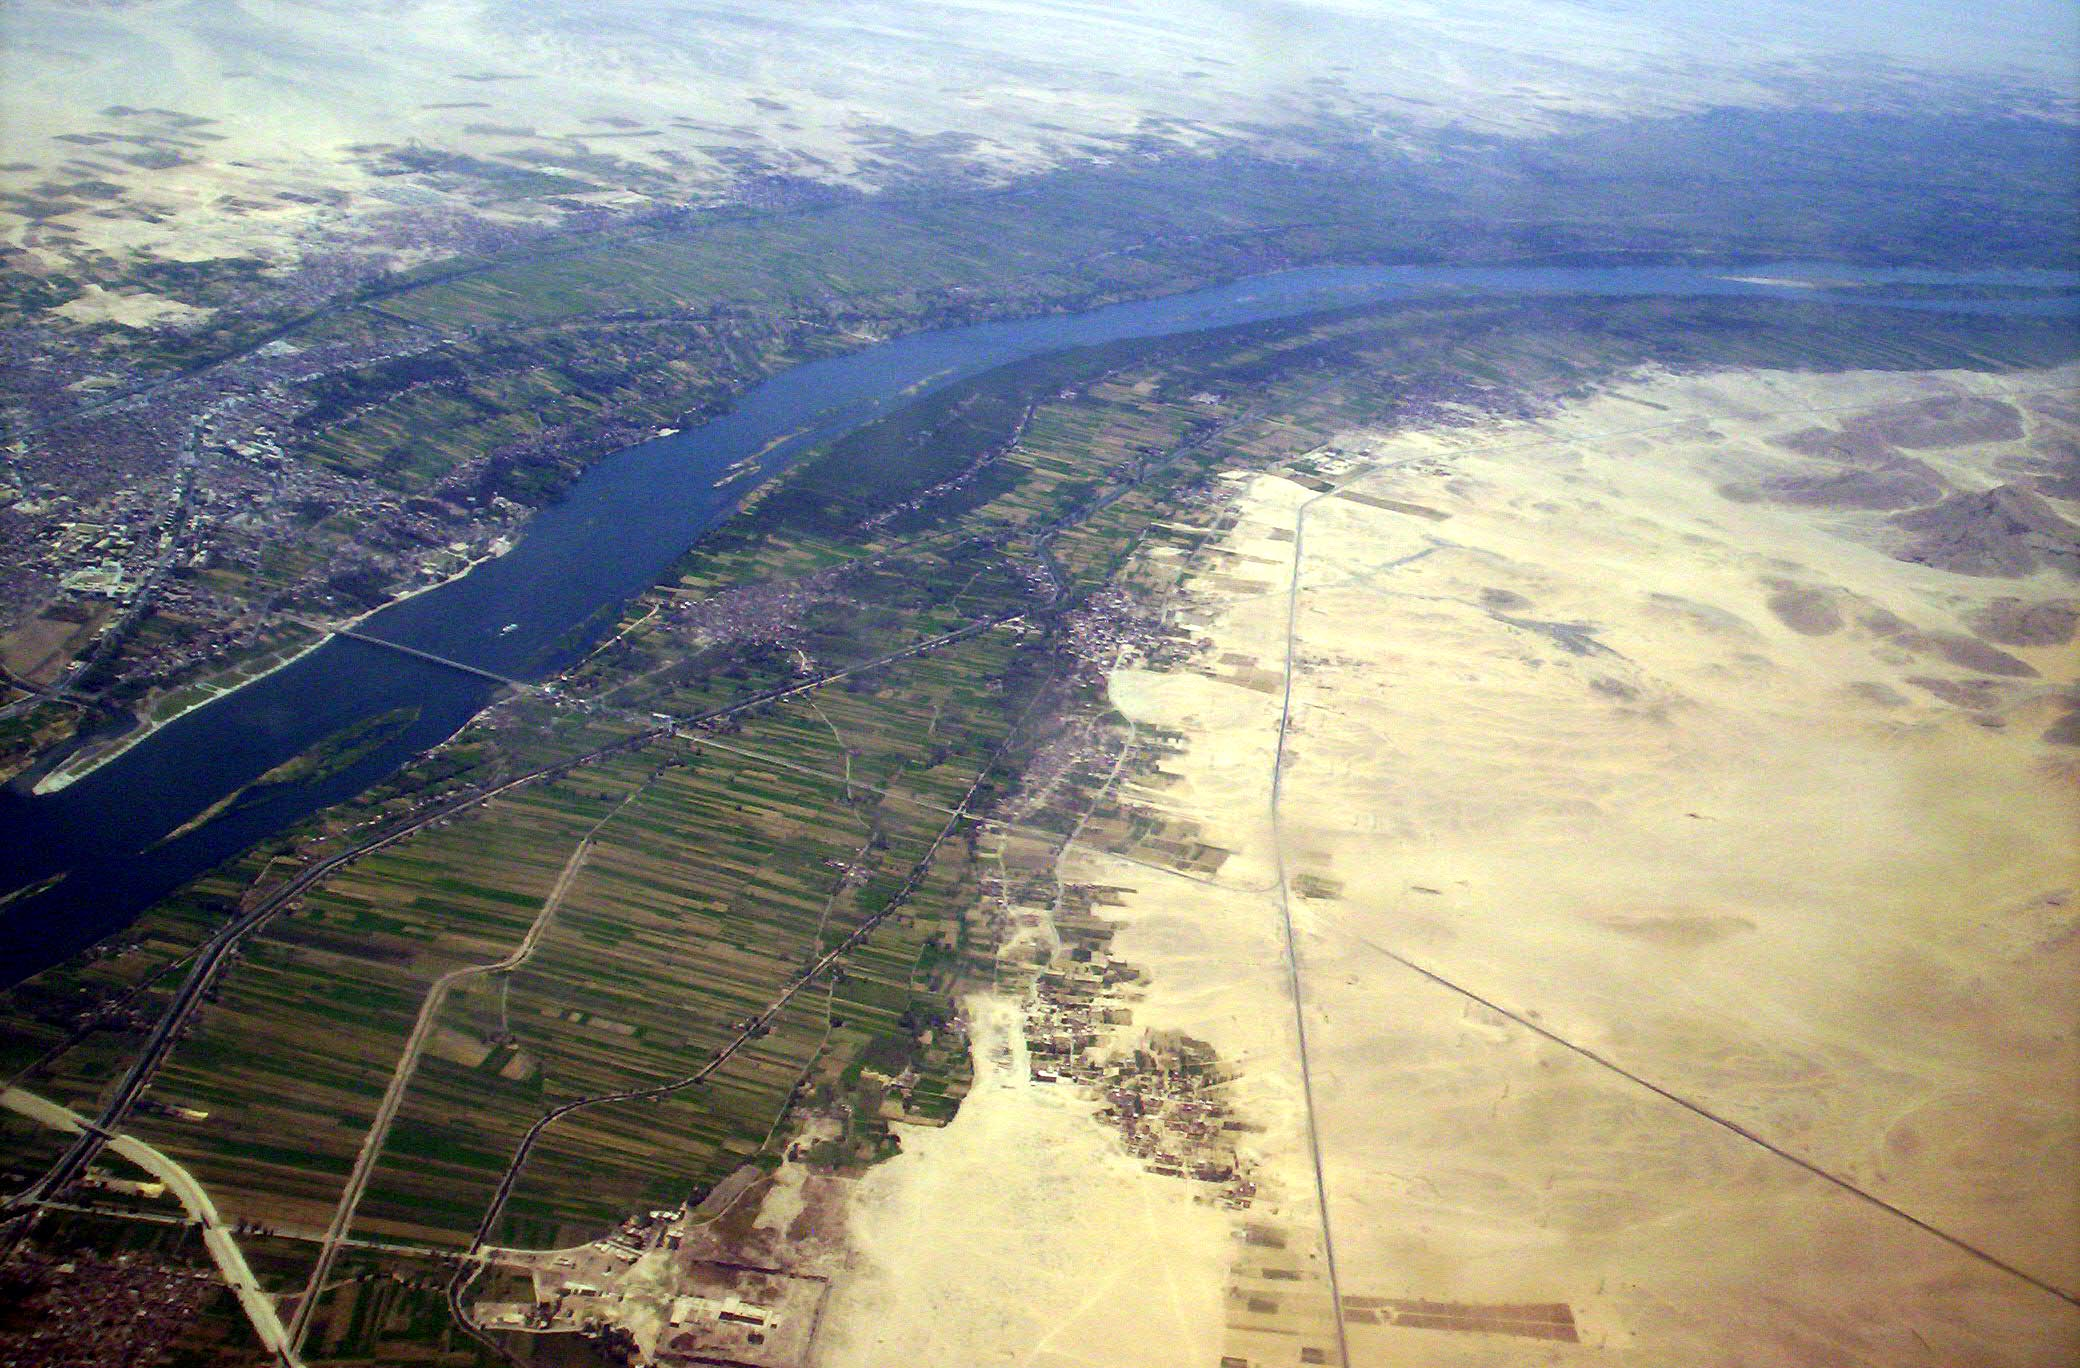 Nile River at Luxor